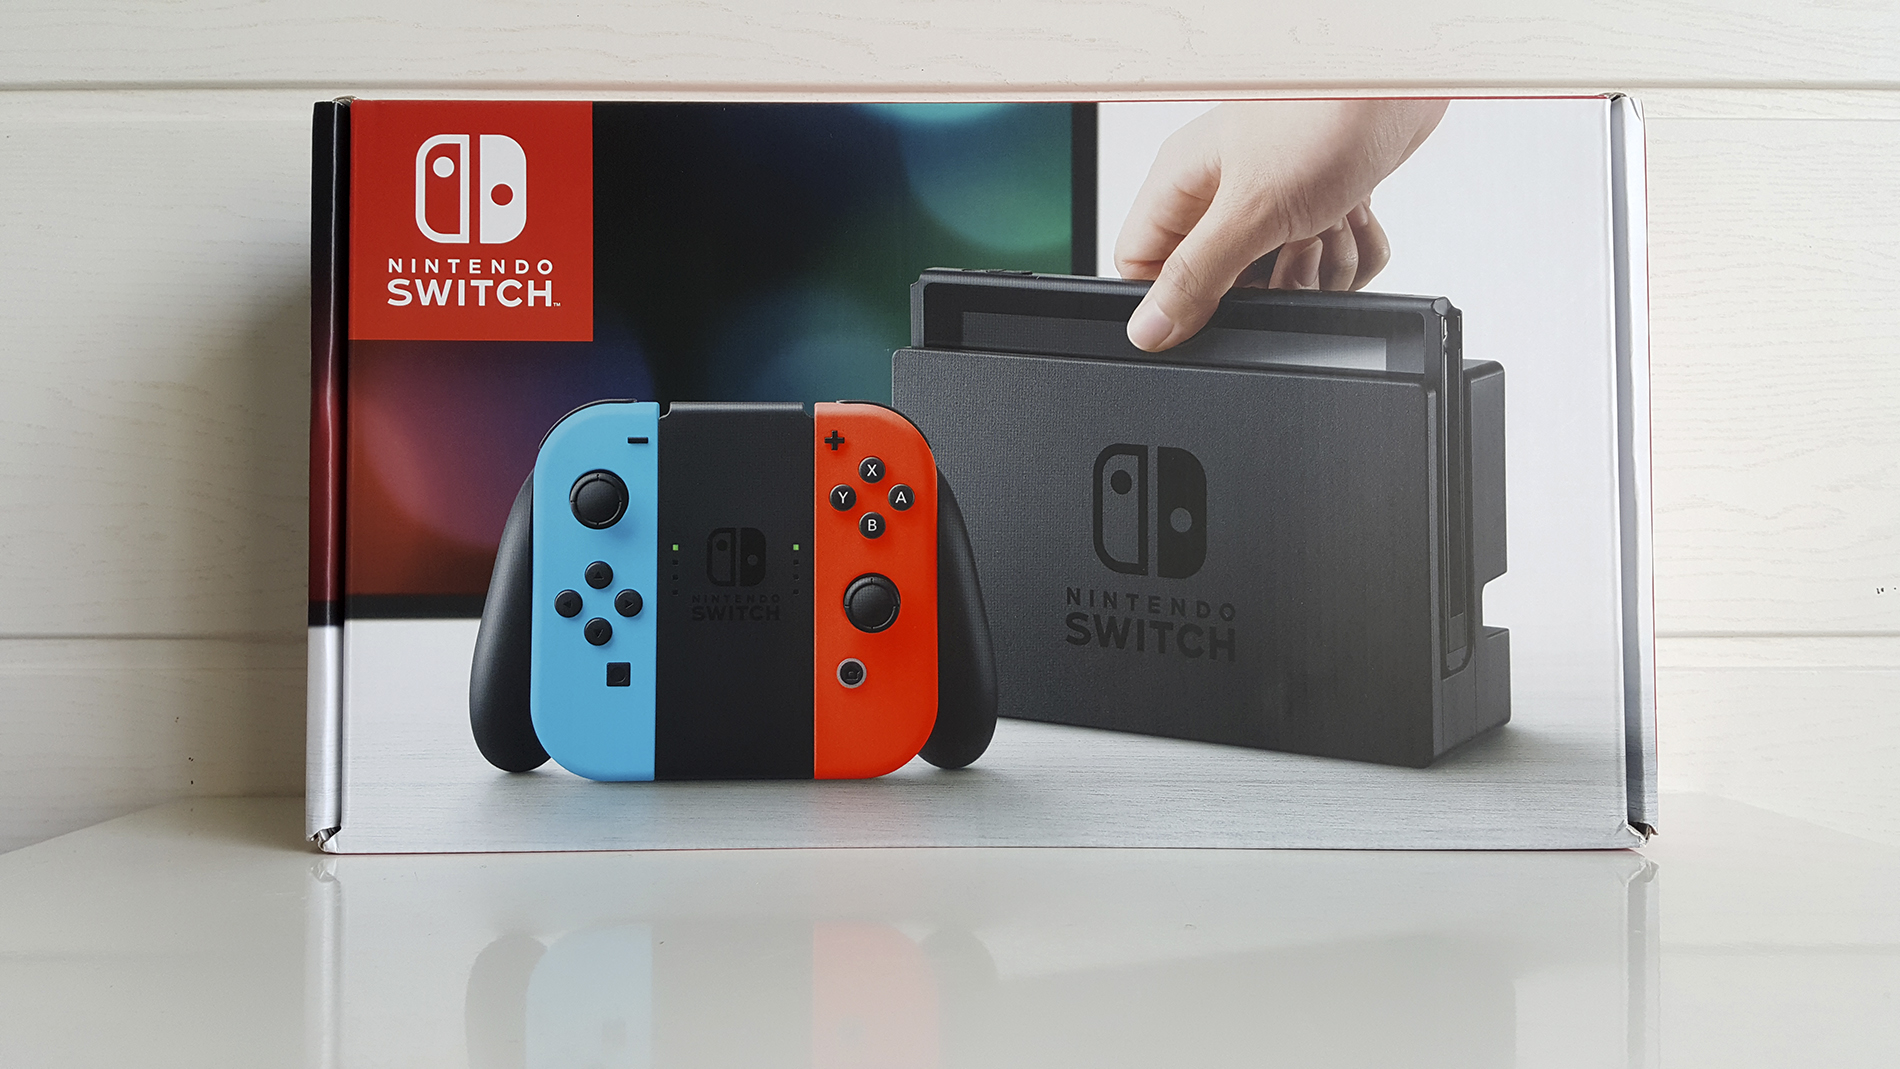 Nintendo Switch Unboxing Insert Coin